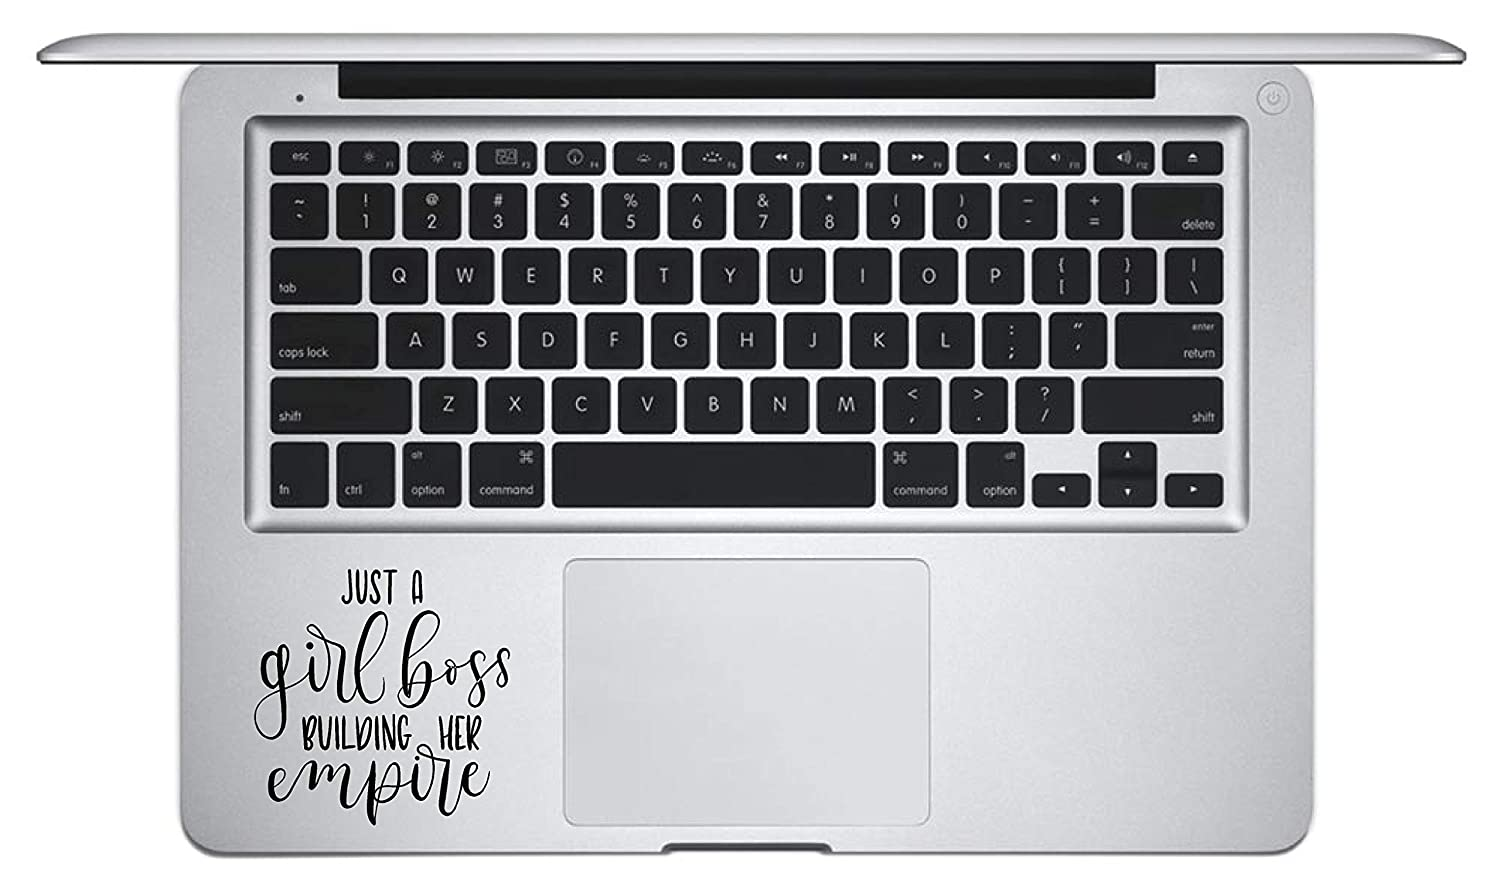 Laptop Notebook Sticker Decal - Just a Girl boss Building her Empire Key pad Palm Rest Inspirational Helpful - Skins Stickers